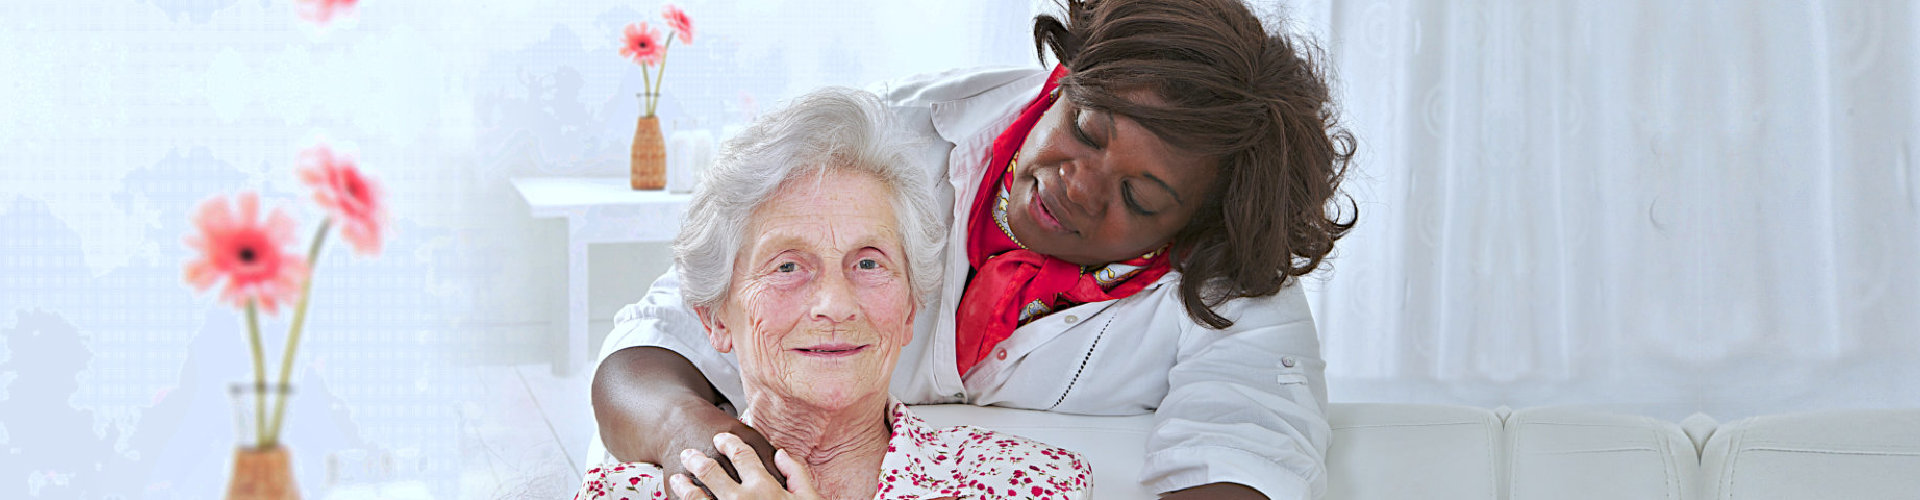 old lady smiling while her caregiver watching her